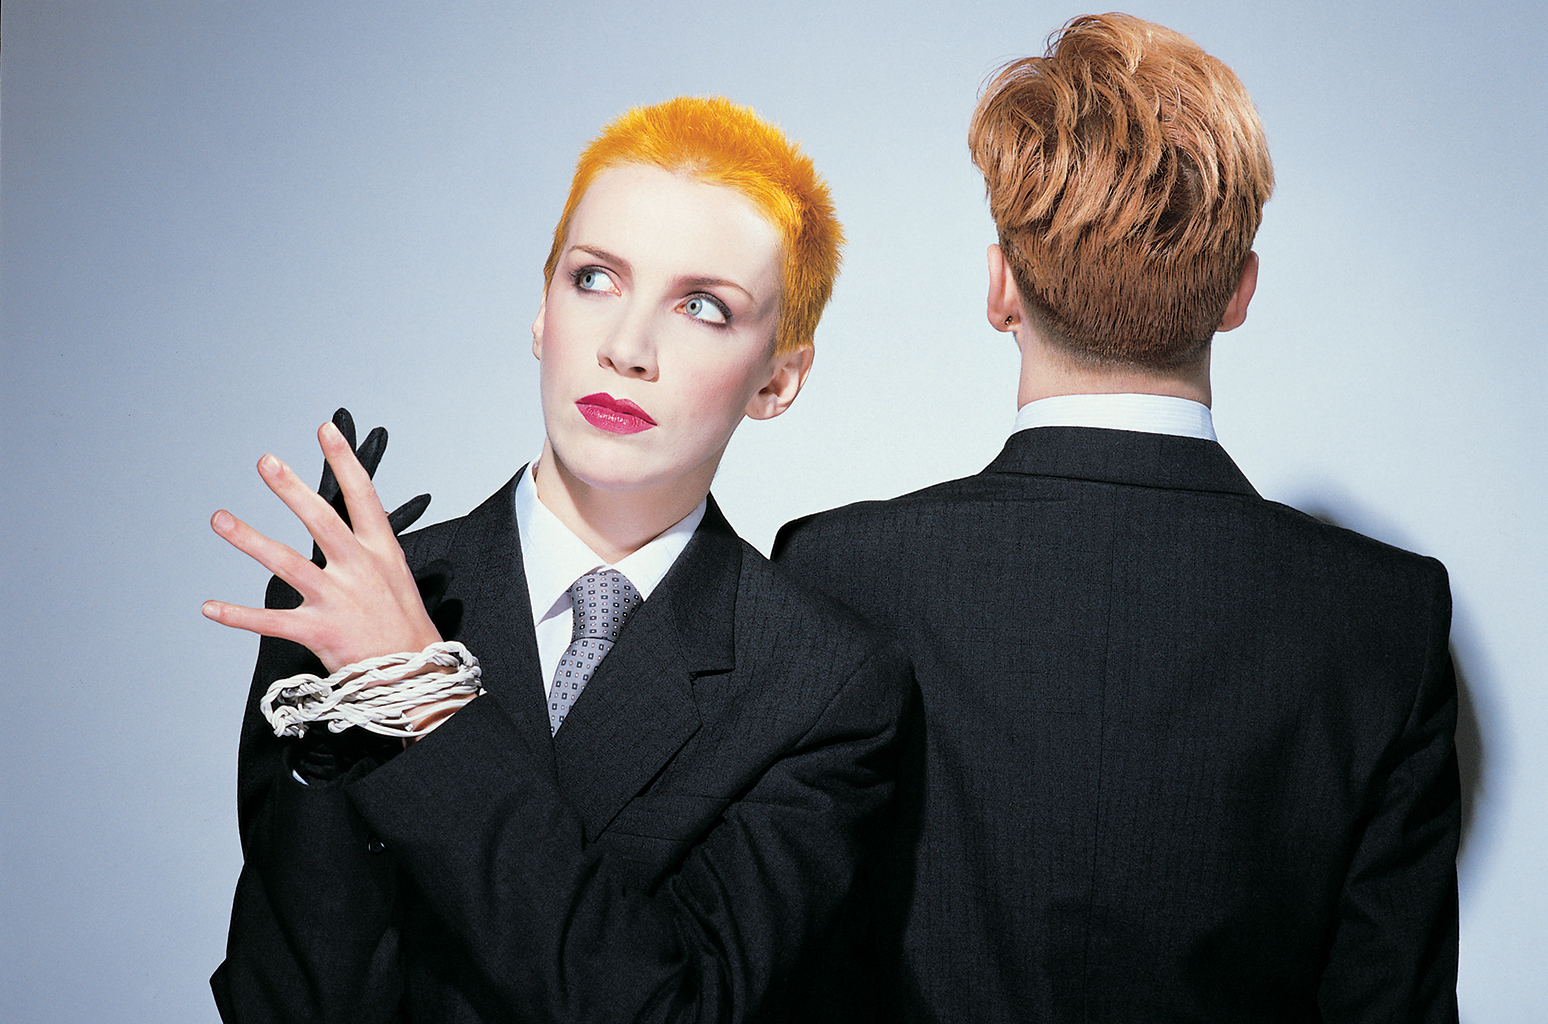 The odd couple. Annie Lennox and Dave Stewart.